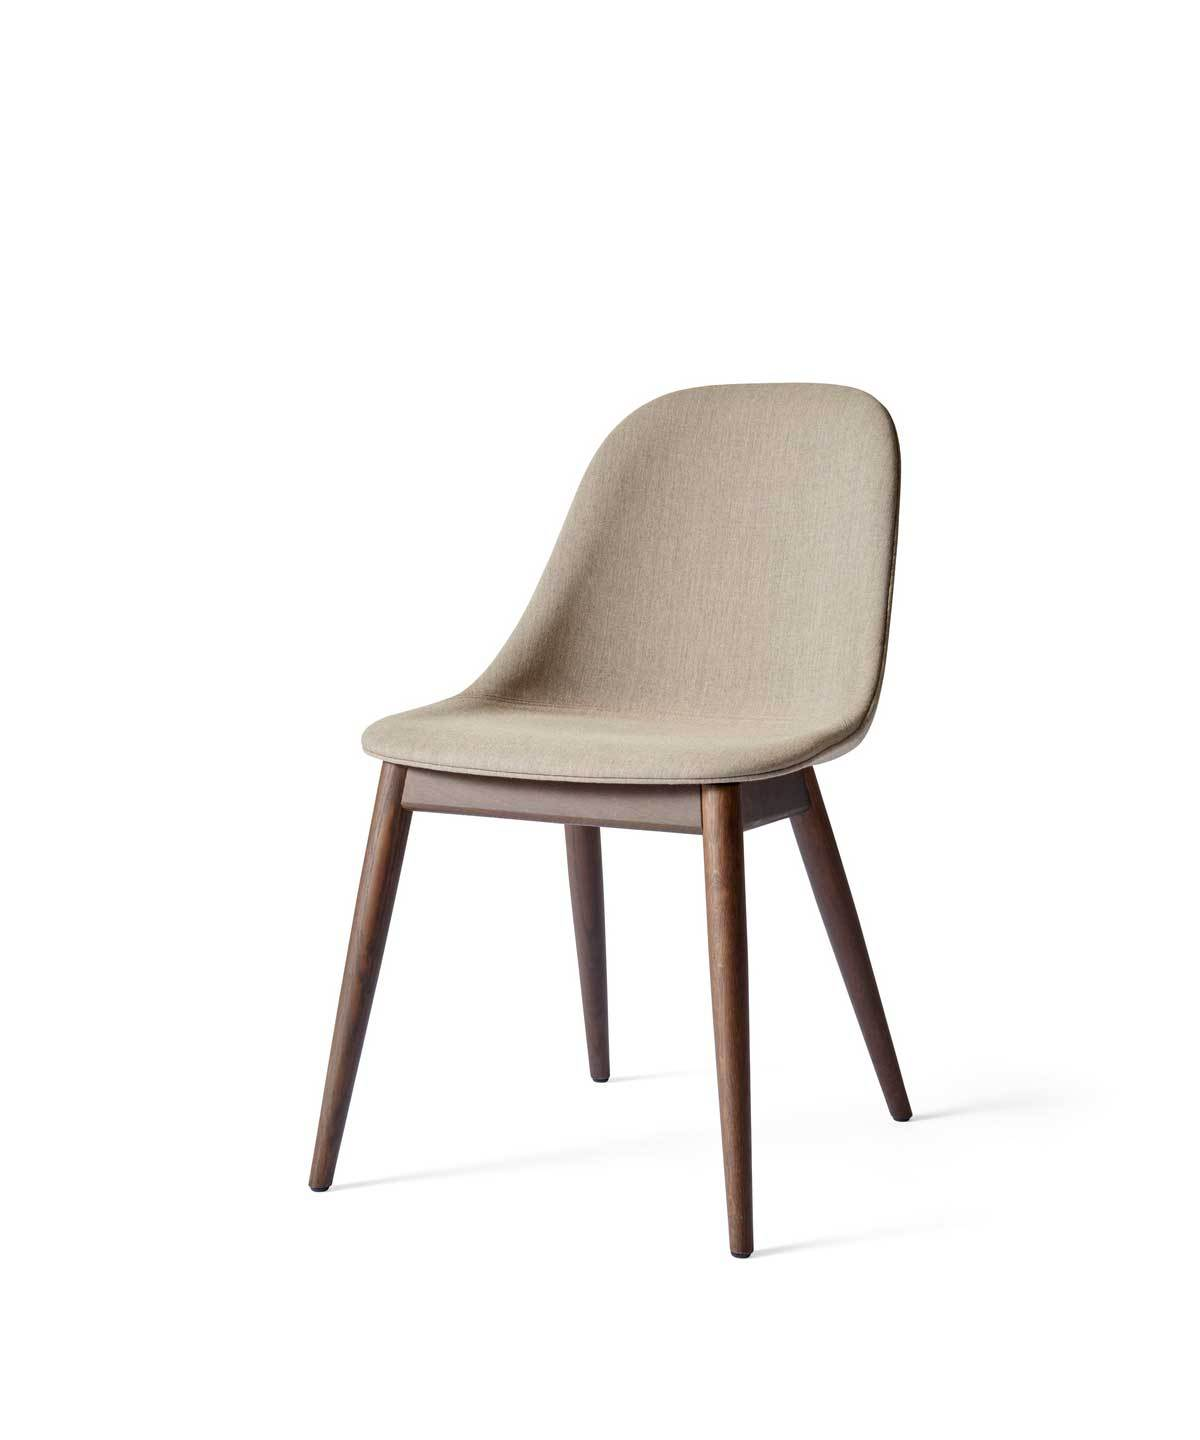 Harbour Side Chair, Upholstered